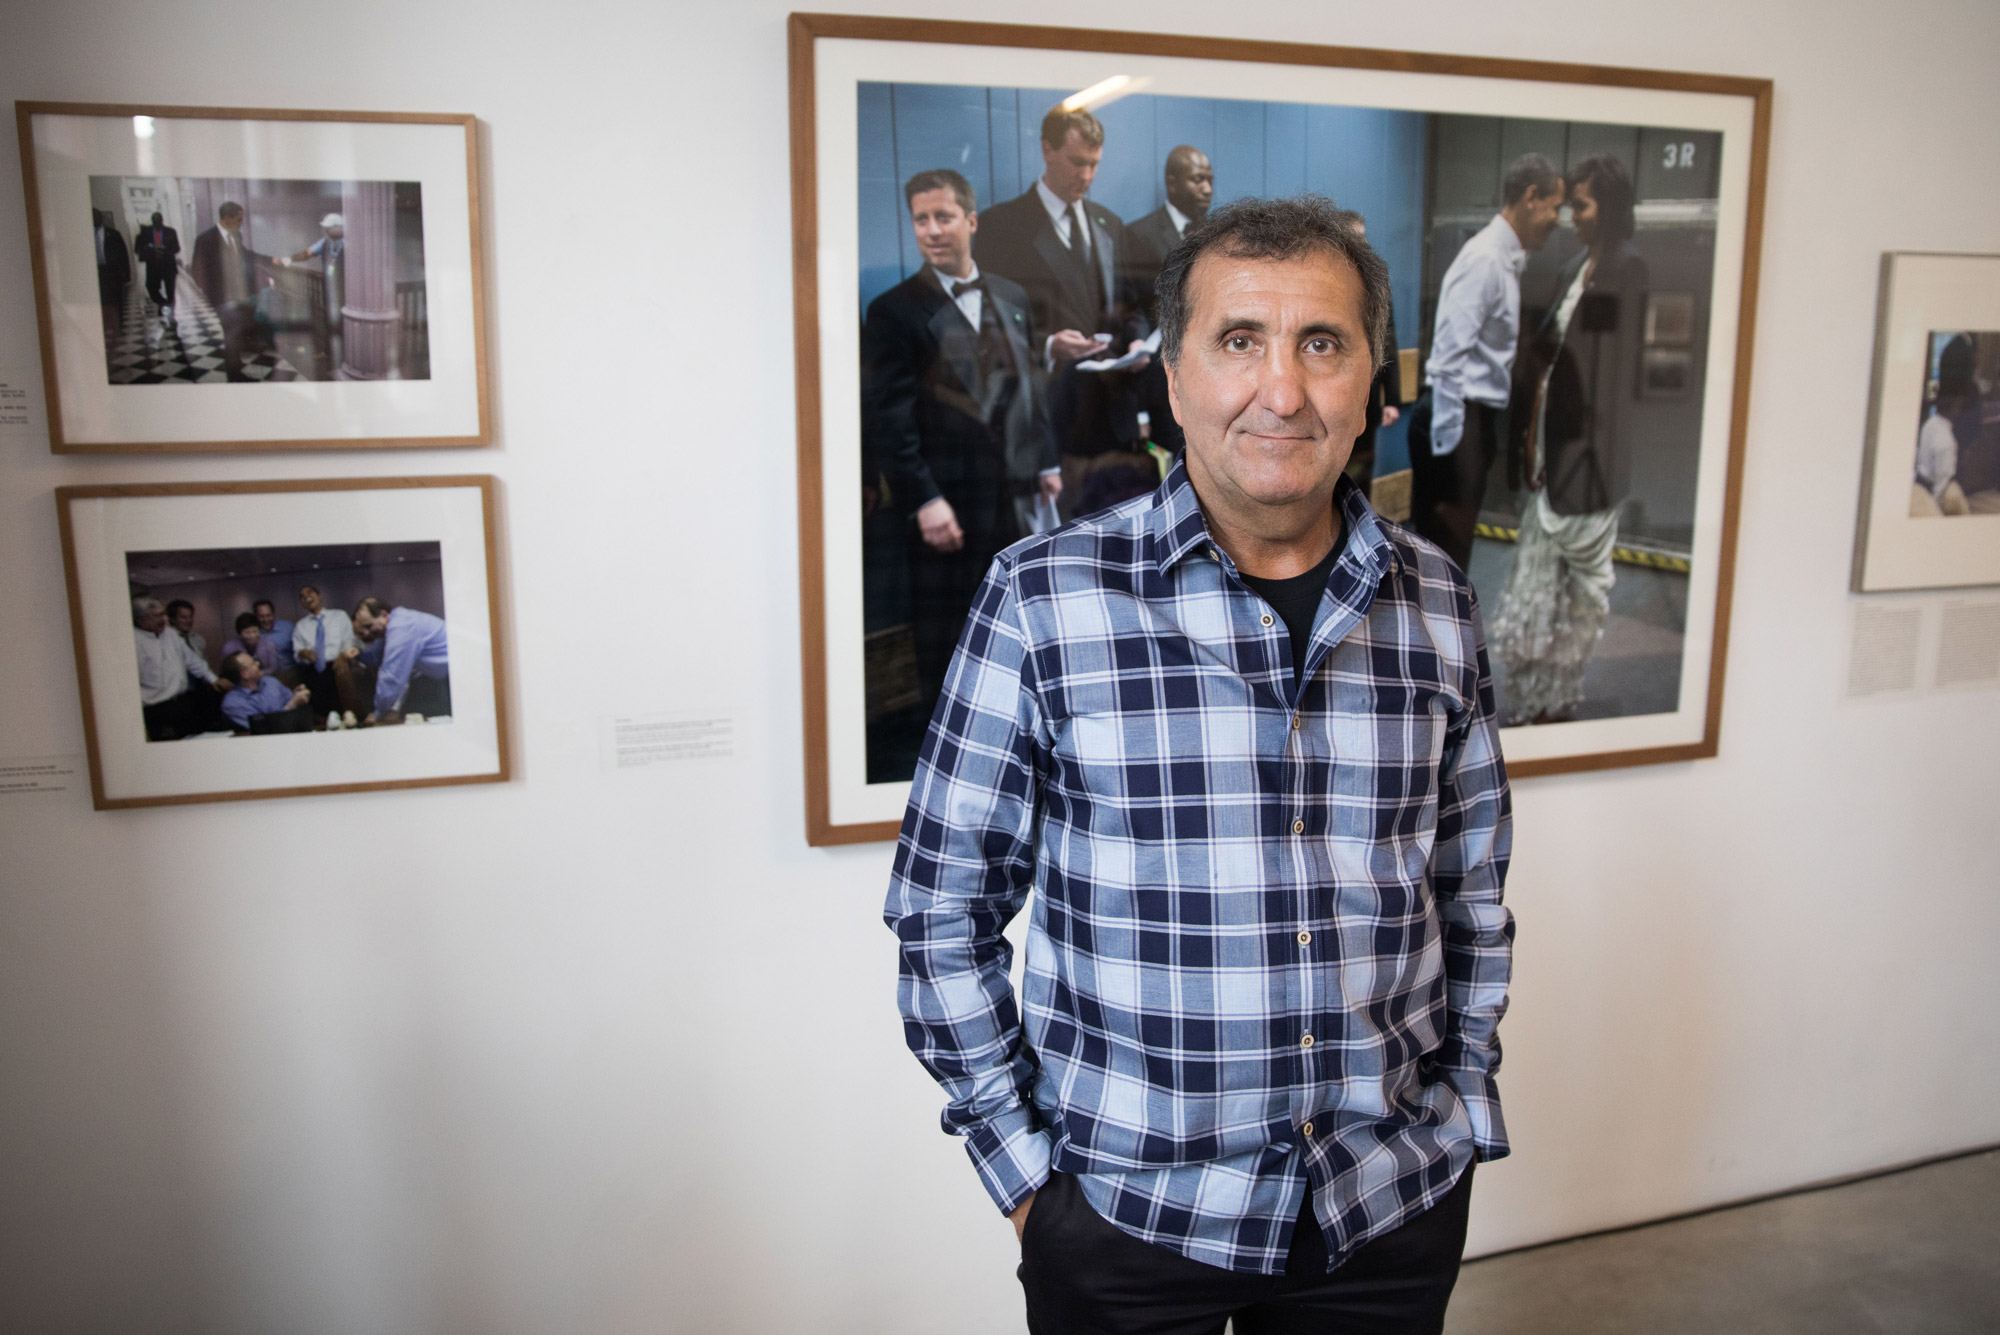 Pete Souza at an exhibit of his photos in Germany in 2018.